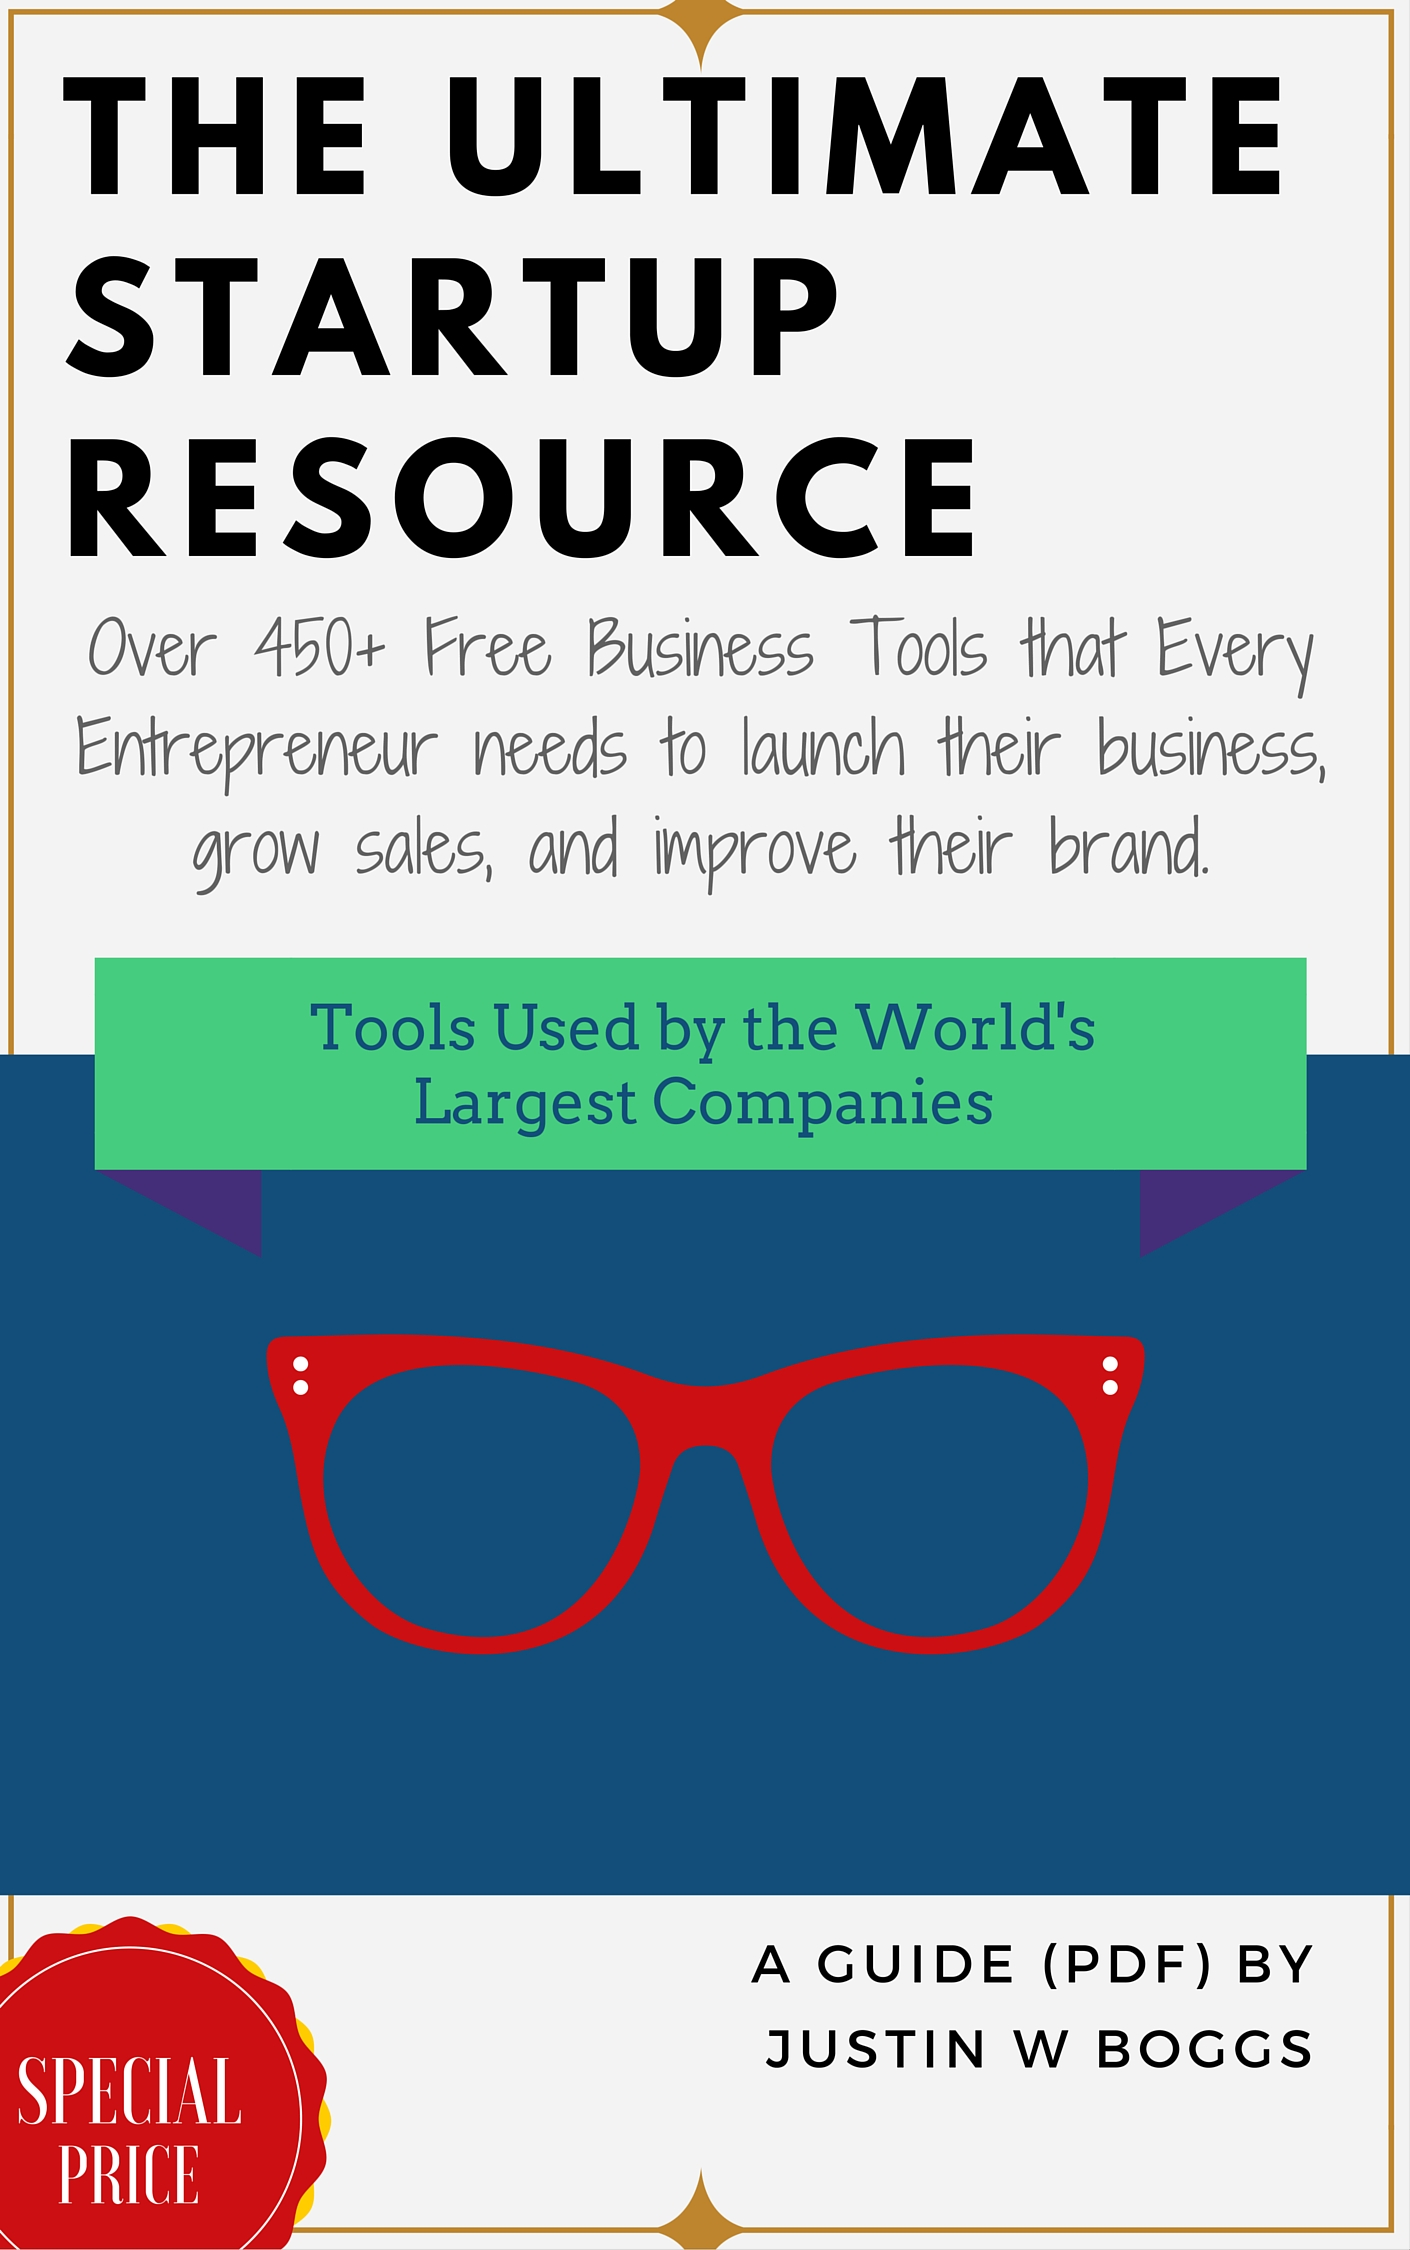 The Ultimate Startup Resource- Over 450+ Free Business Tools that Every Entrepreneur Needs to Launch their Business, grow sales, and Improve their brand.